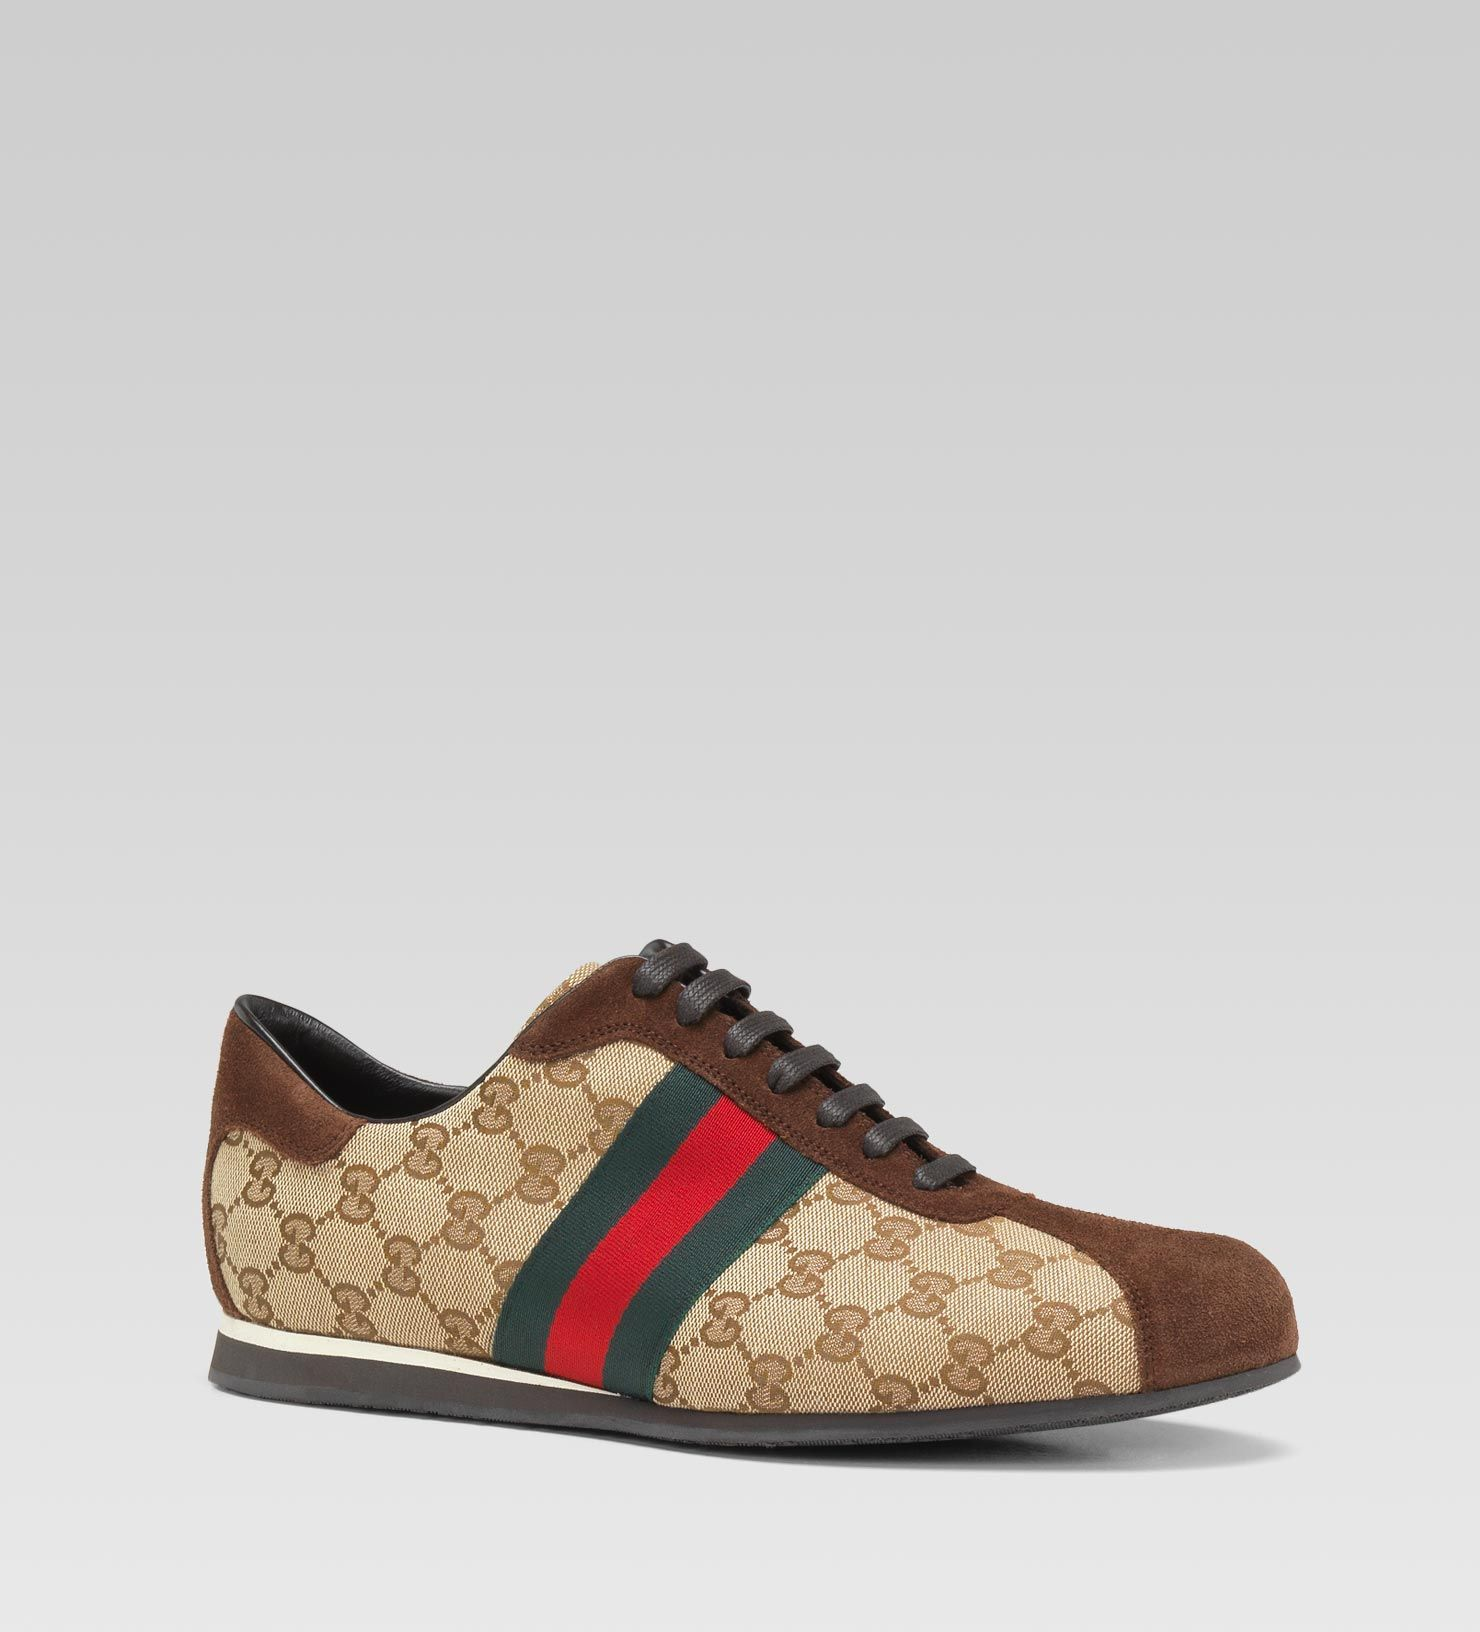 871cf7bbb It's like a fancy pair of bowling shoes! - Gucci Lace-up sneaker with  signature web detail.